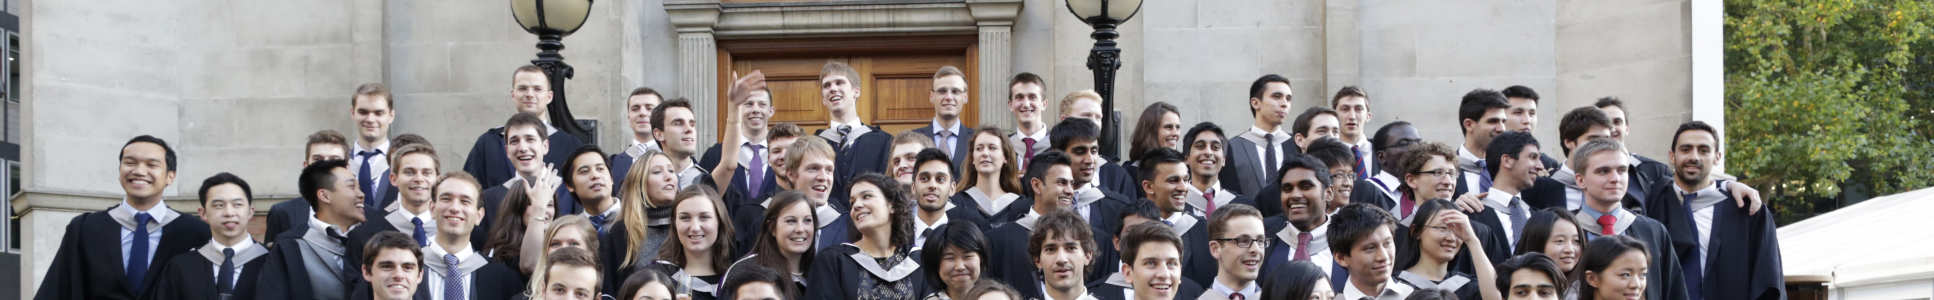 Graduates at Imperial College London